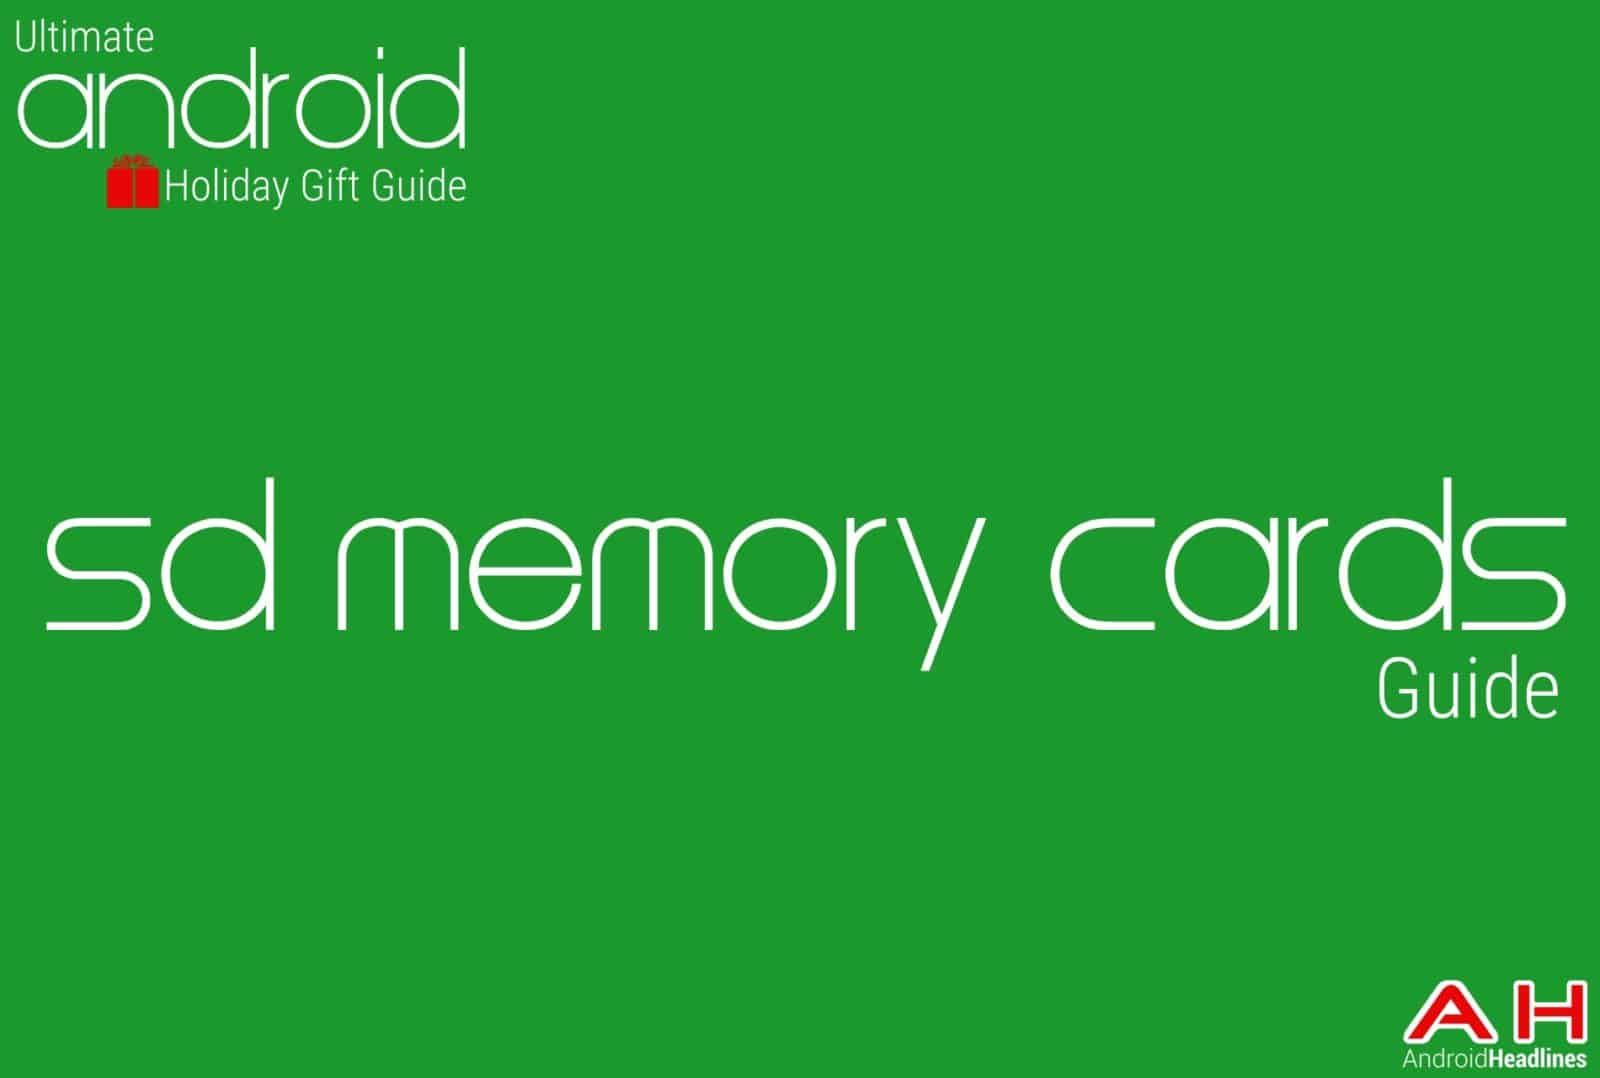 Best Android SD Memory Cards Guide - Android Holiday Gift Guide Top 10